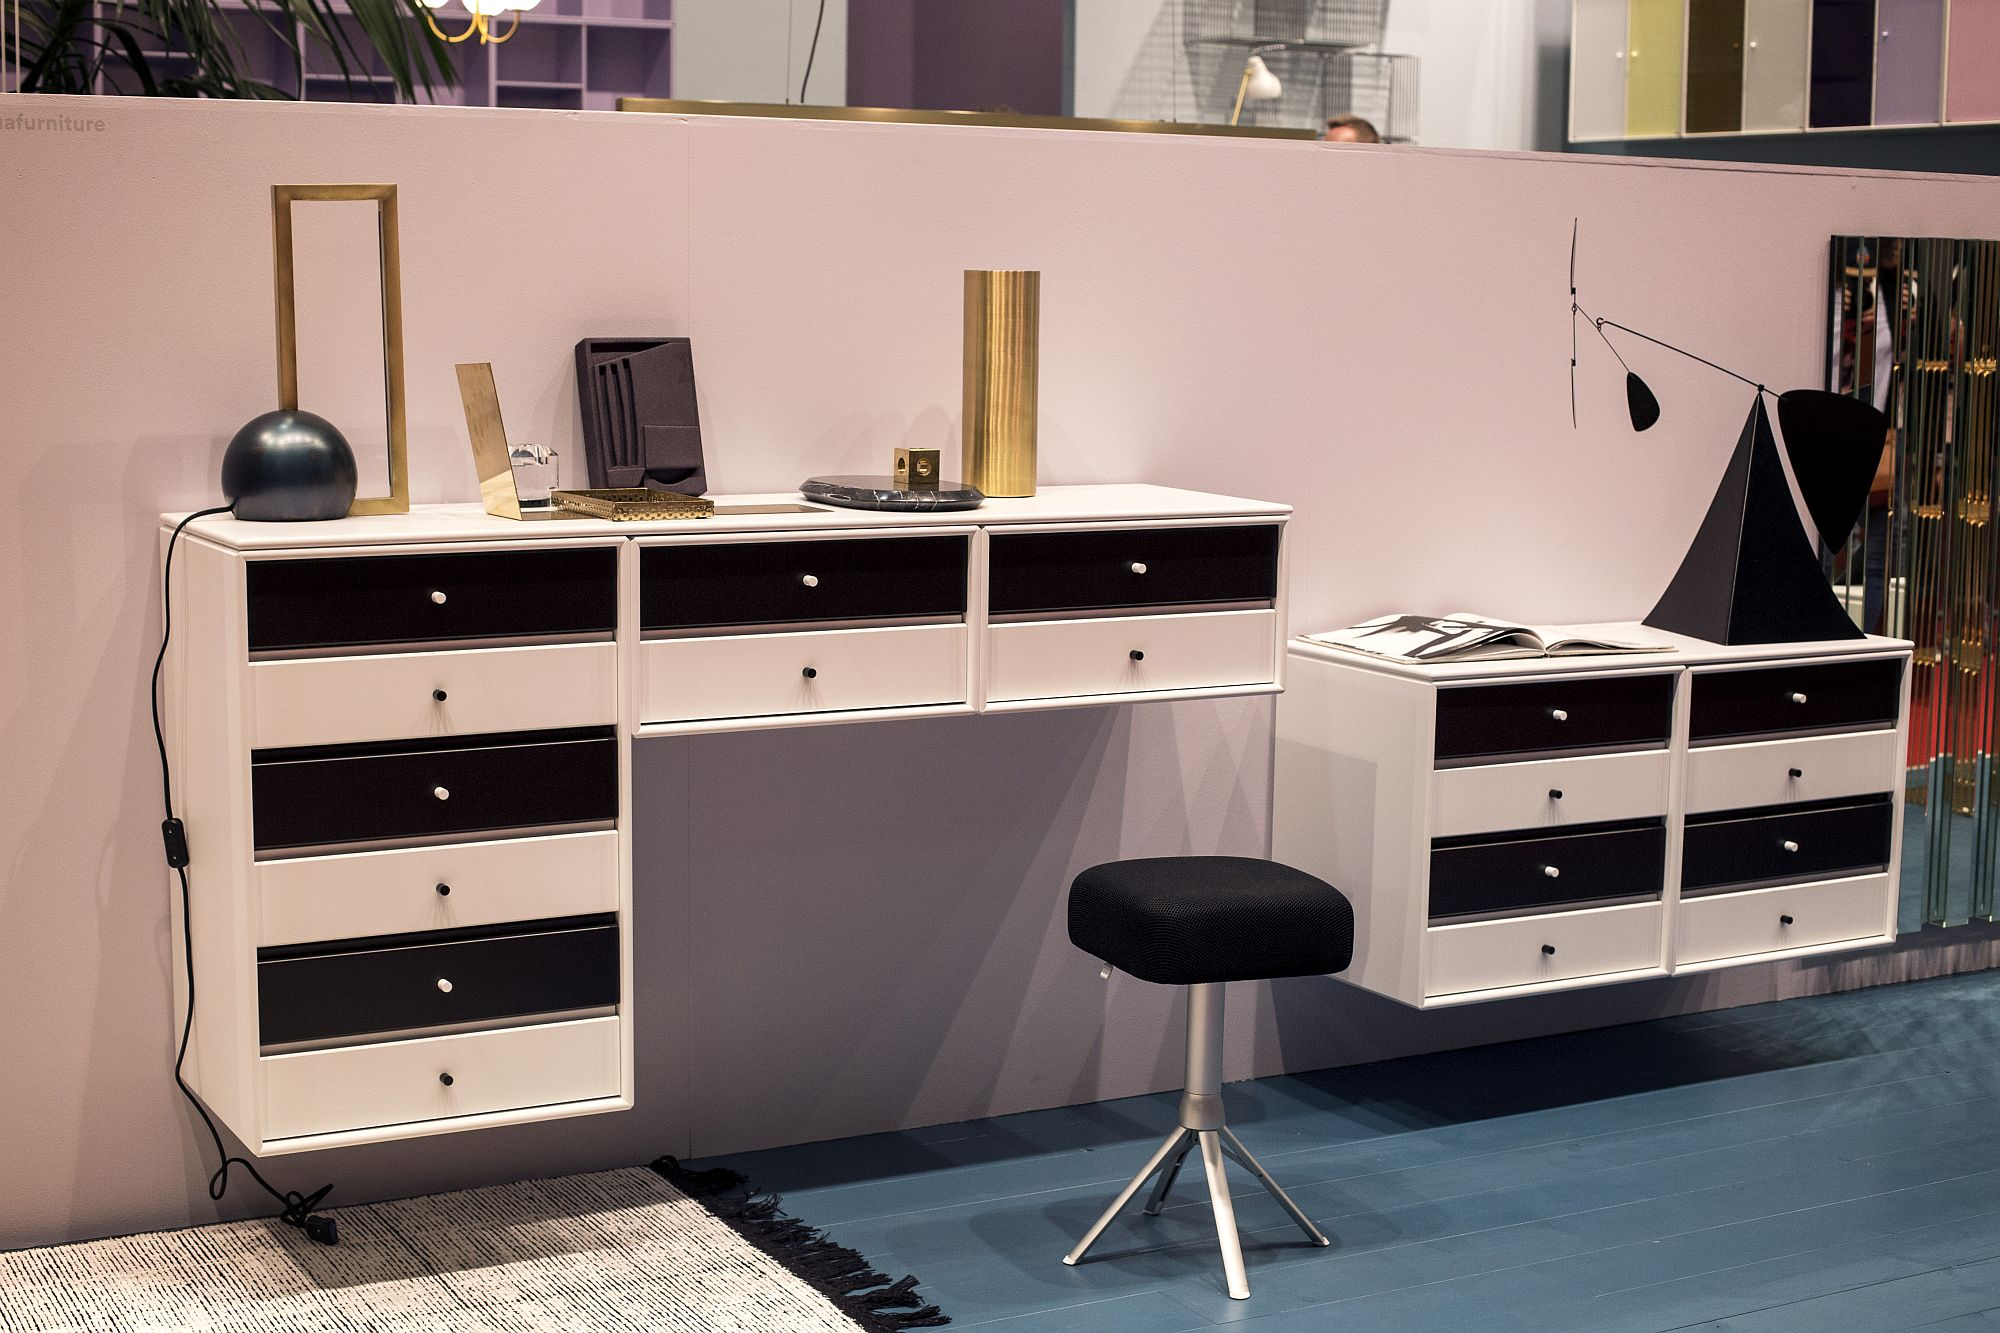 Smart-modular-shelving-that-is-wall-mounted-also-offers-a-cool-work-surface-when-needed